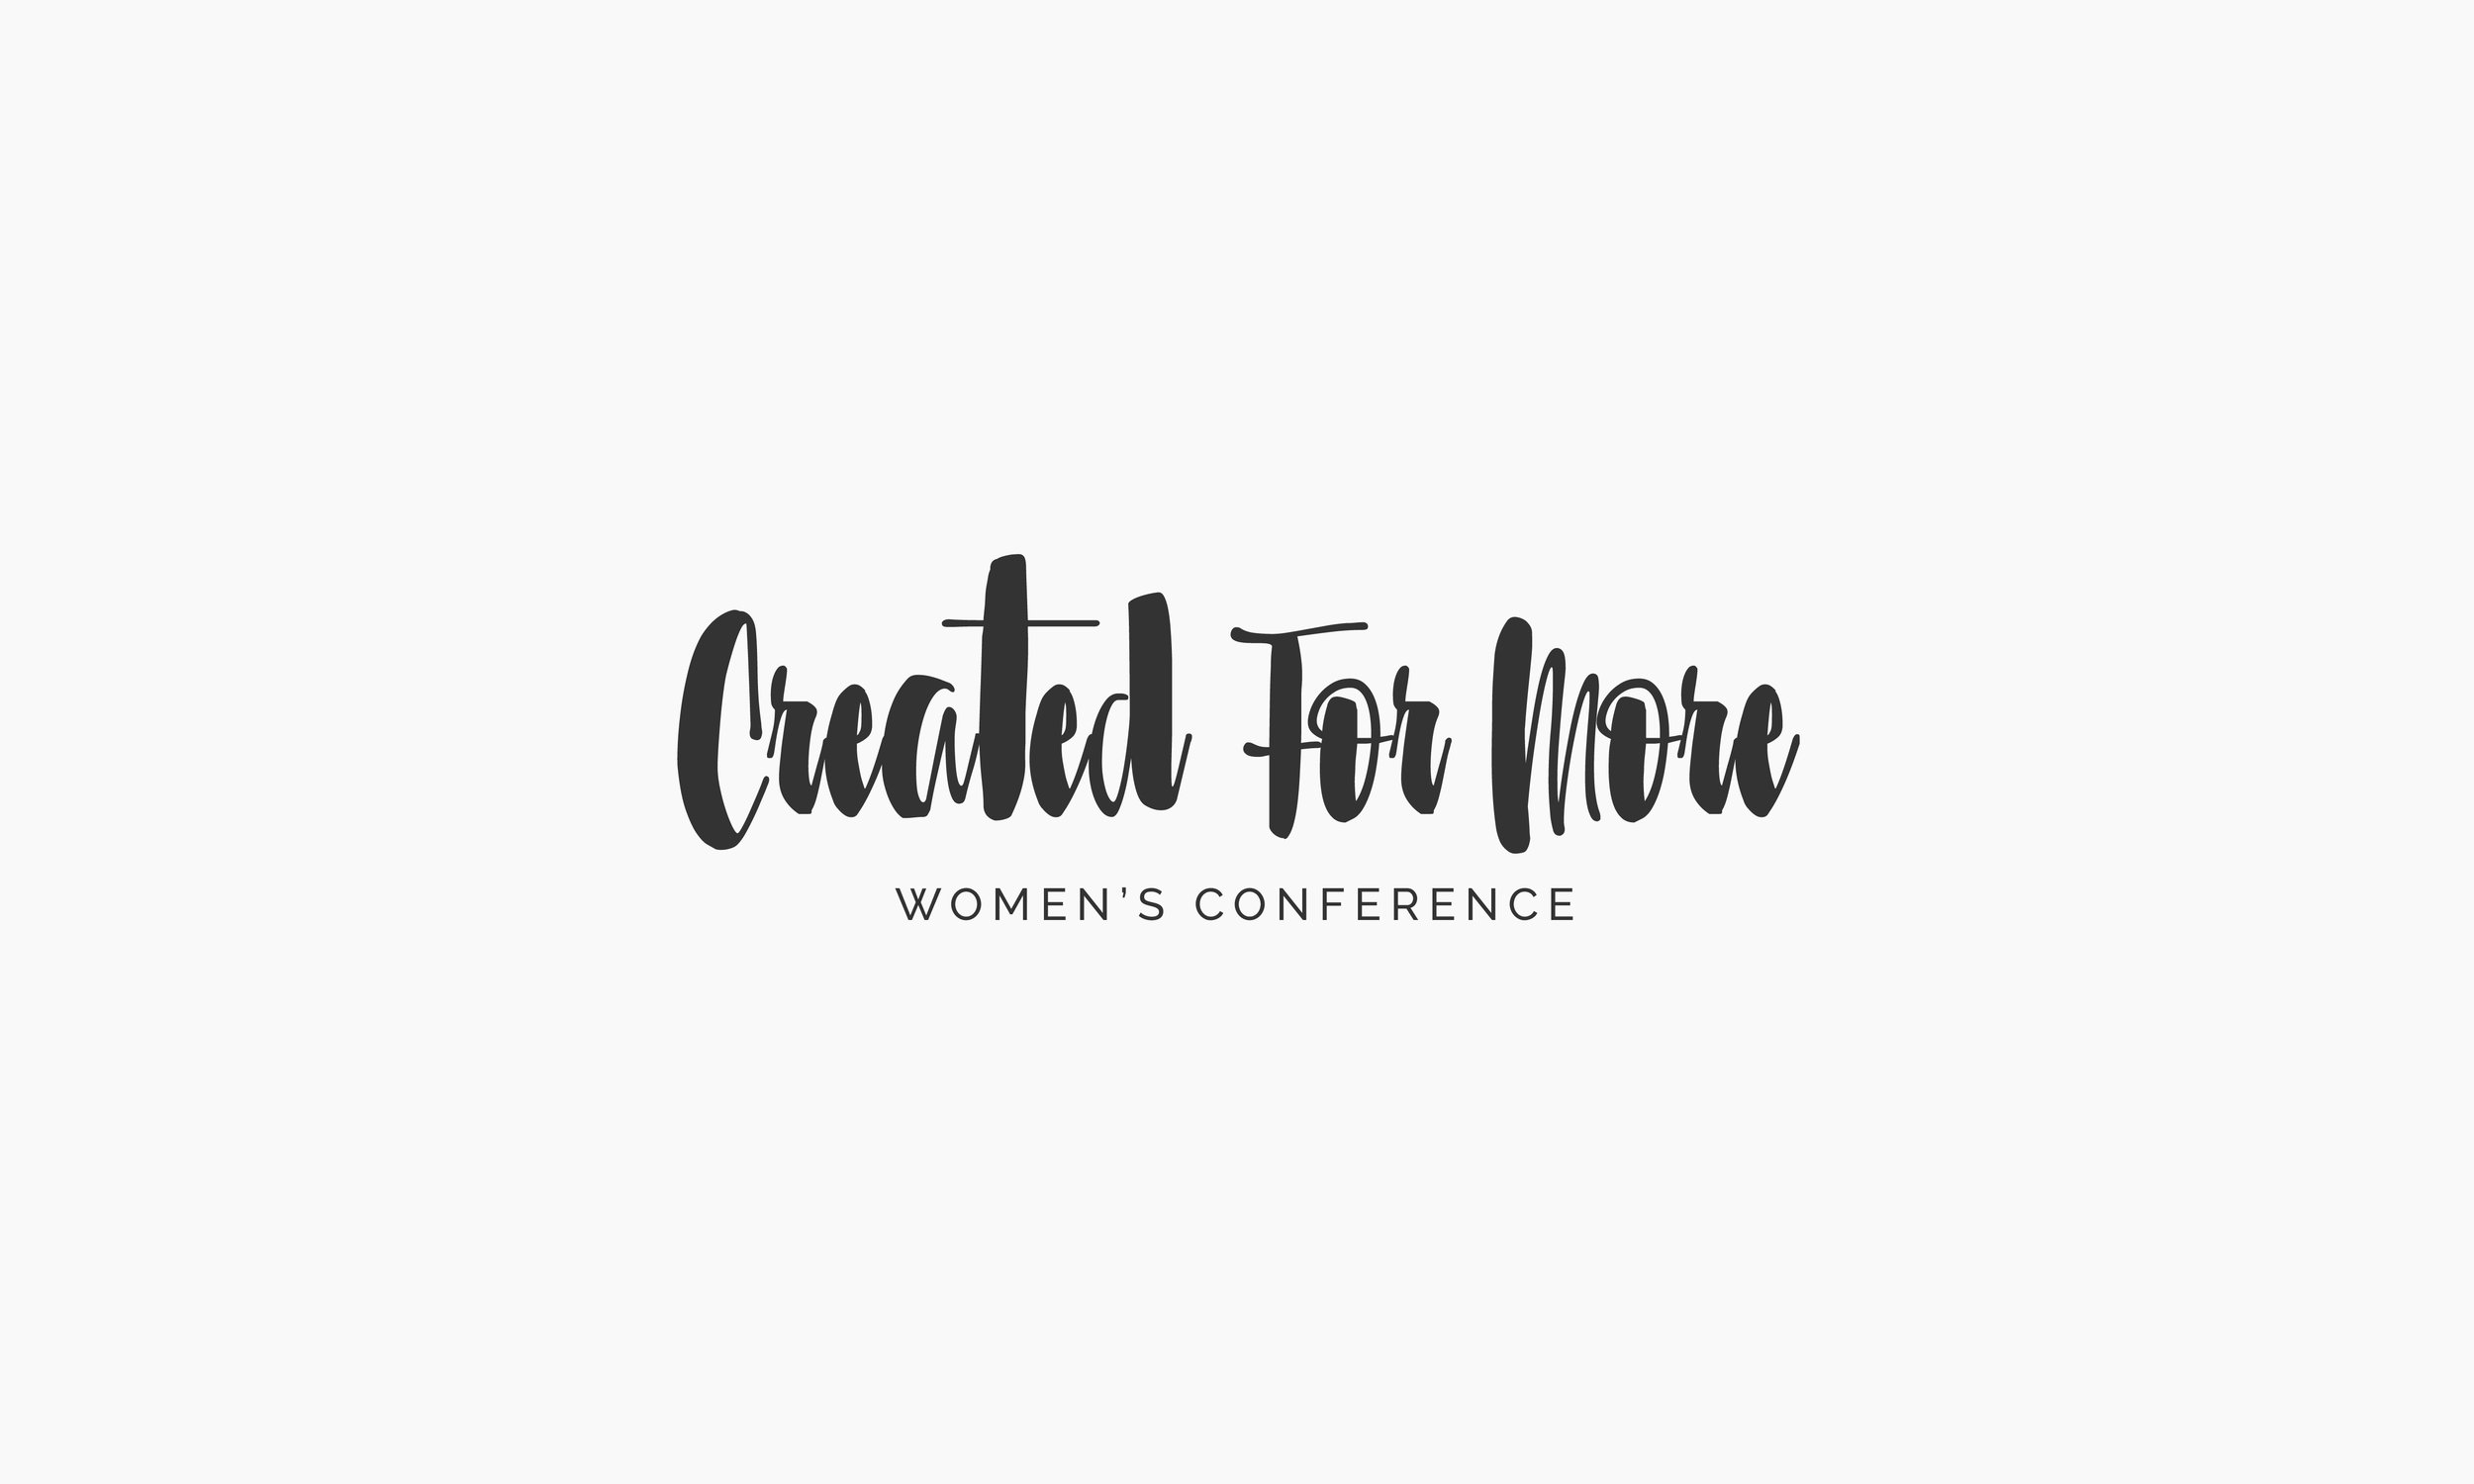 womens-conference-logo